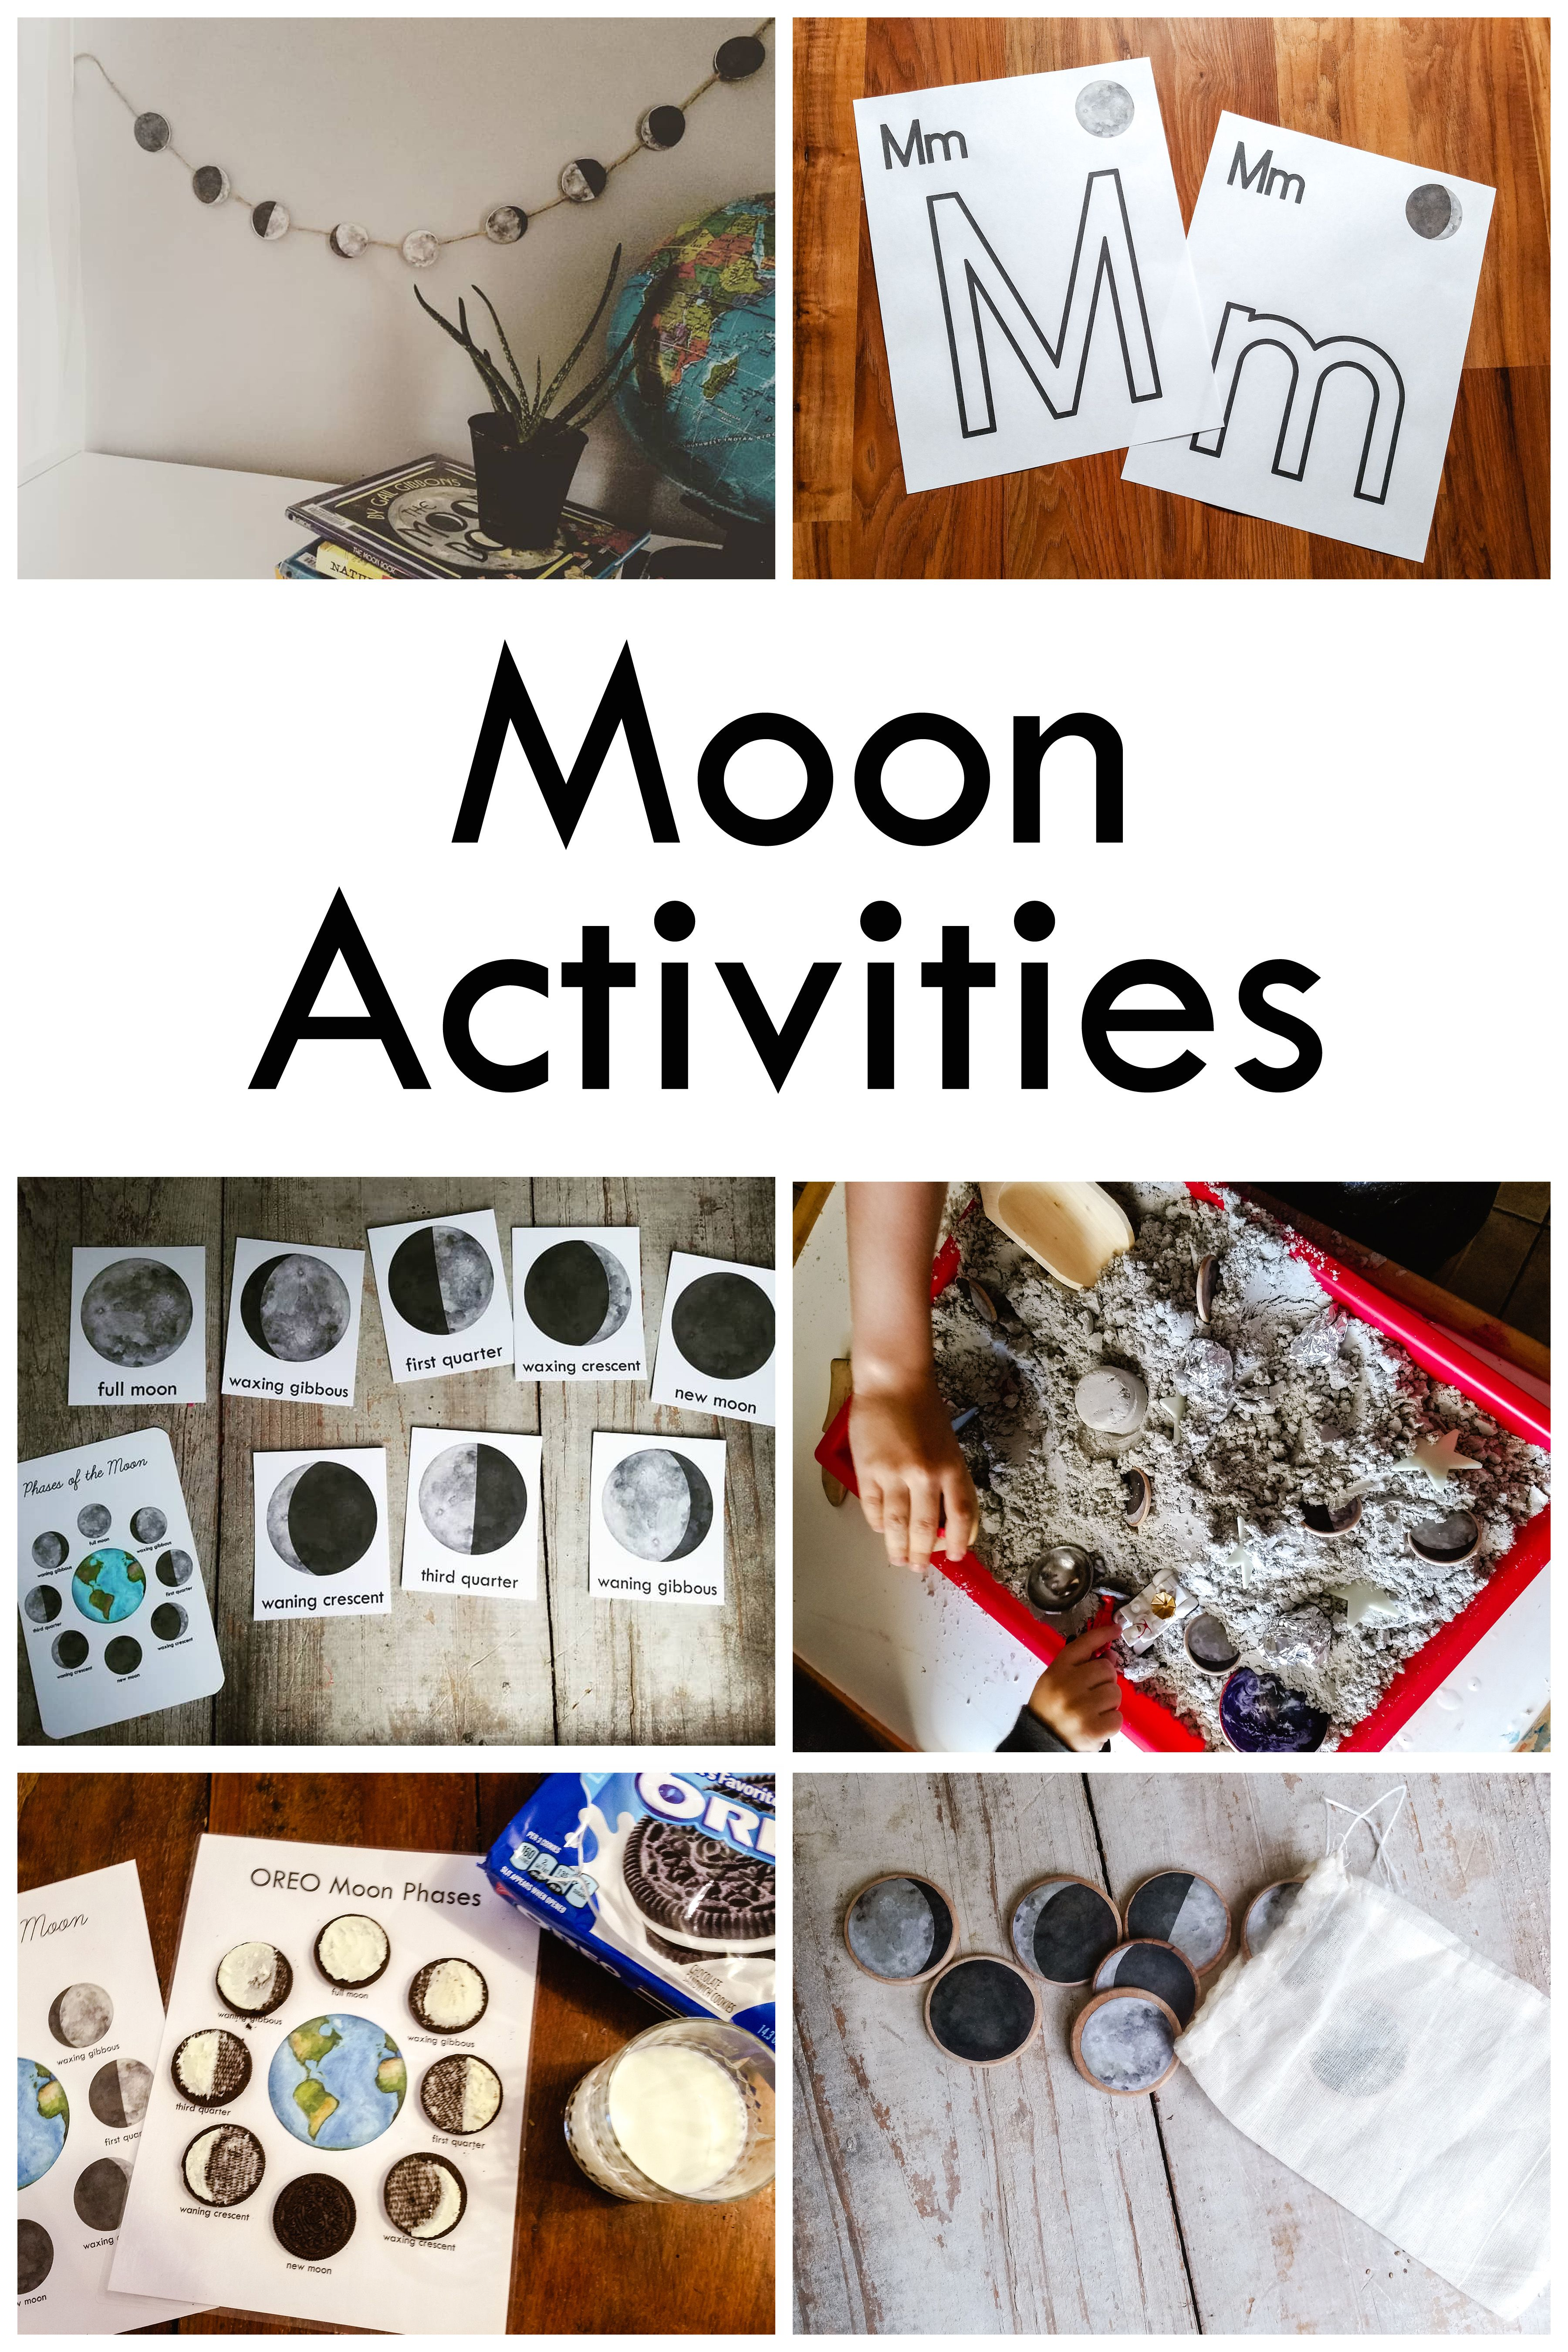 Moon Phase Activities